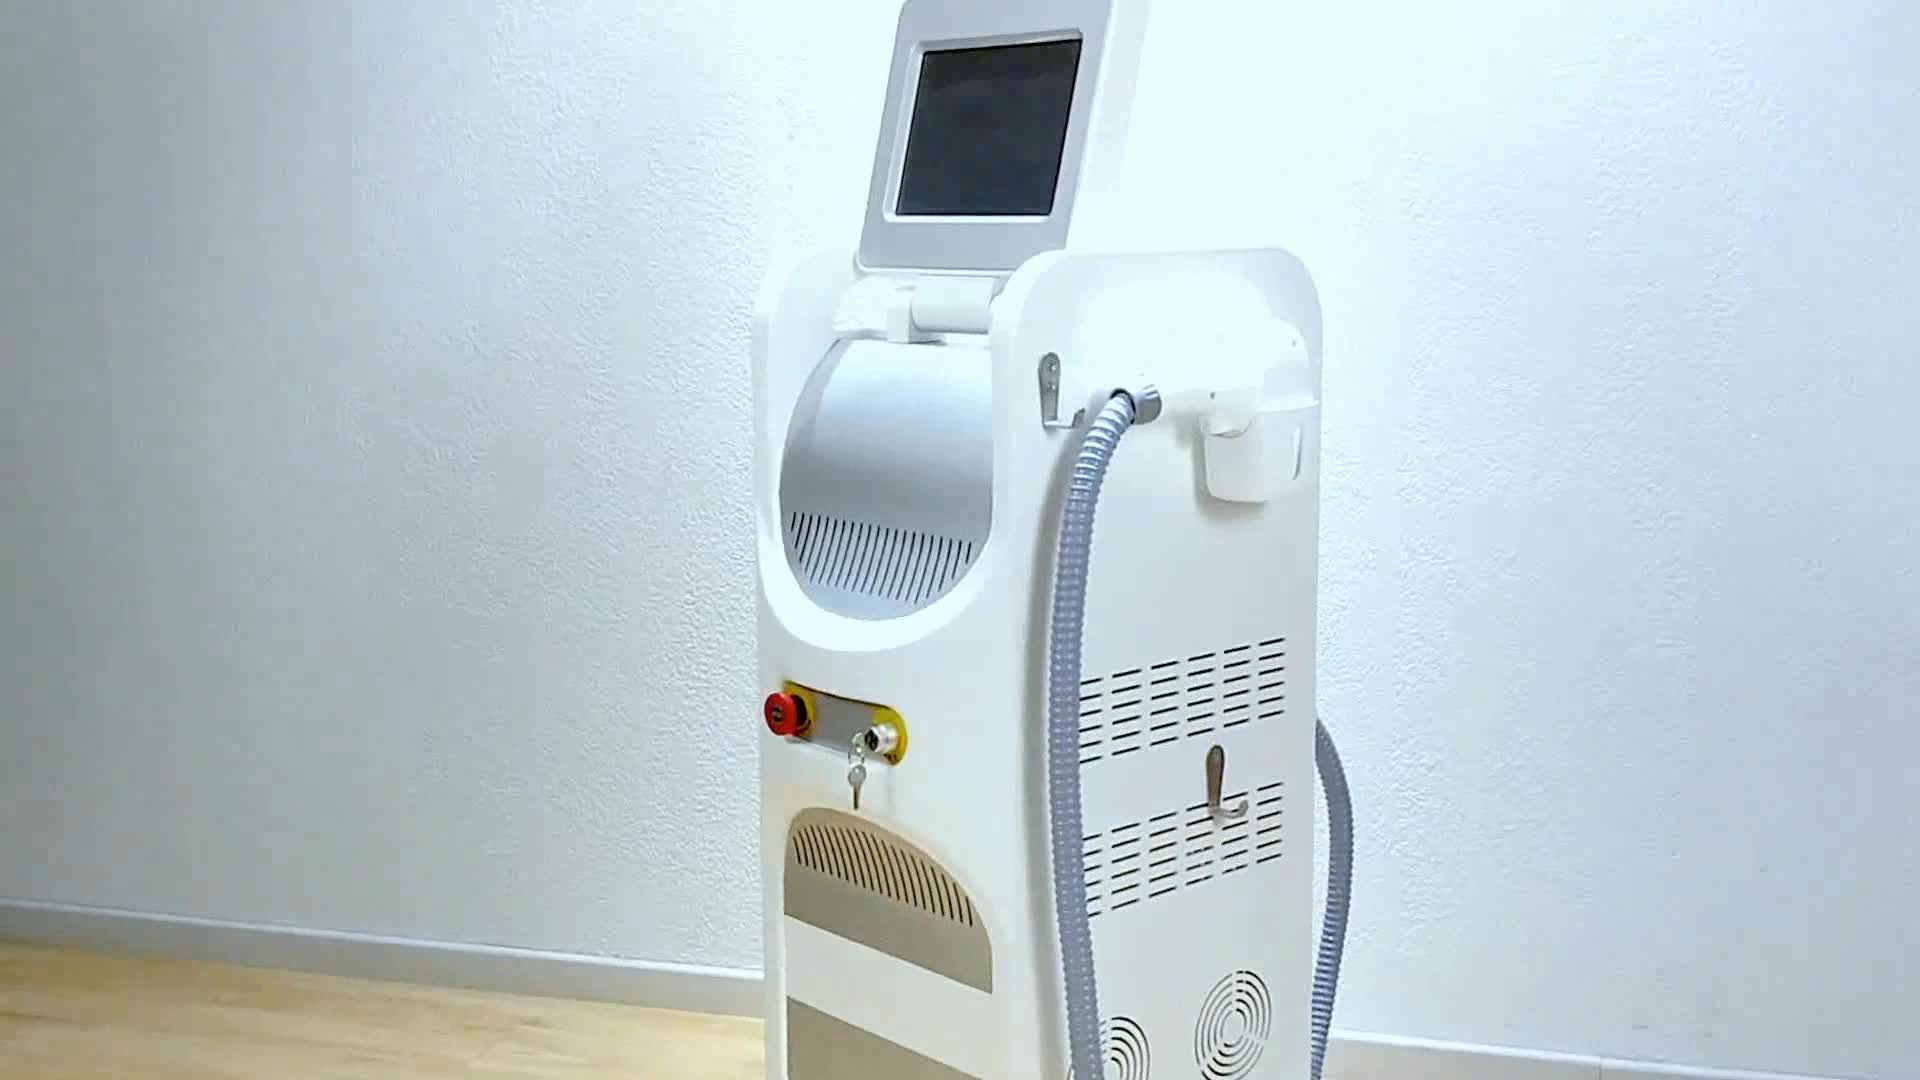 Professional Depilation Laser 808 Diode Medical Equipment Hair Removal Machine 808Nm Diode Laser